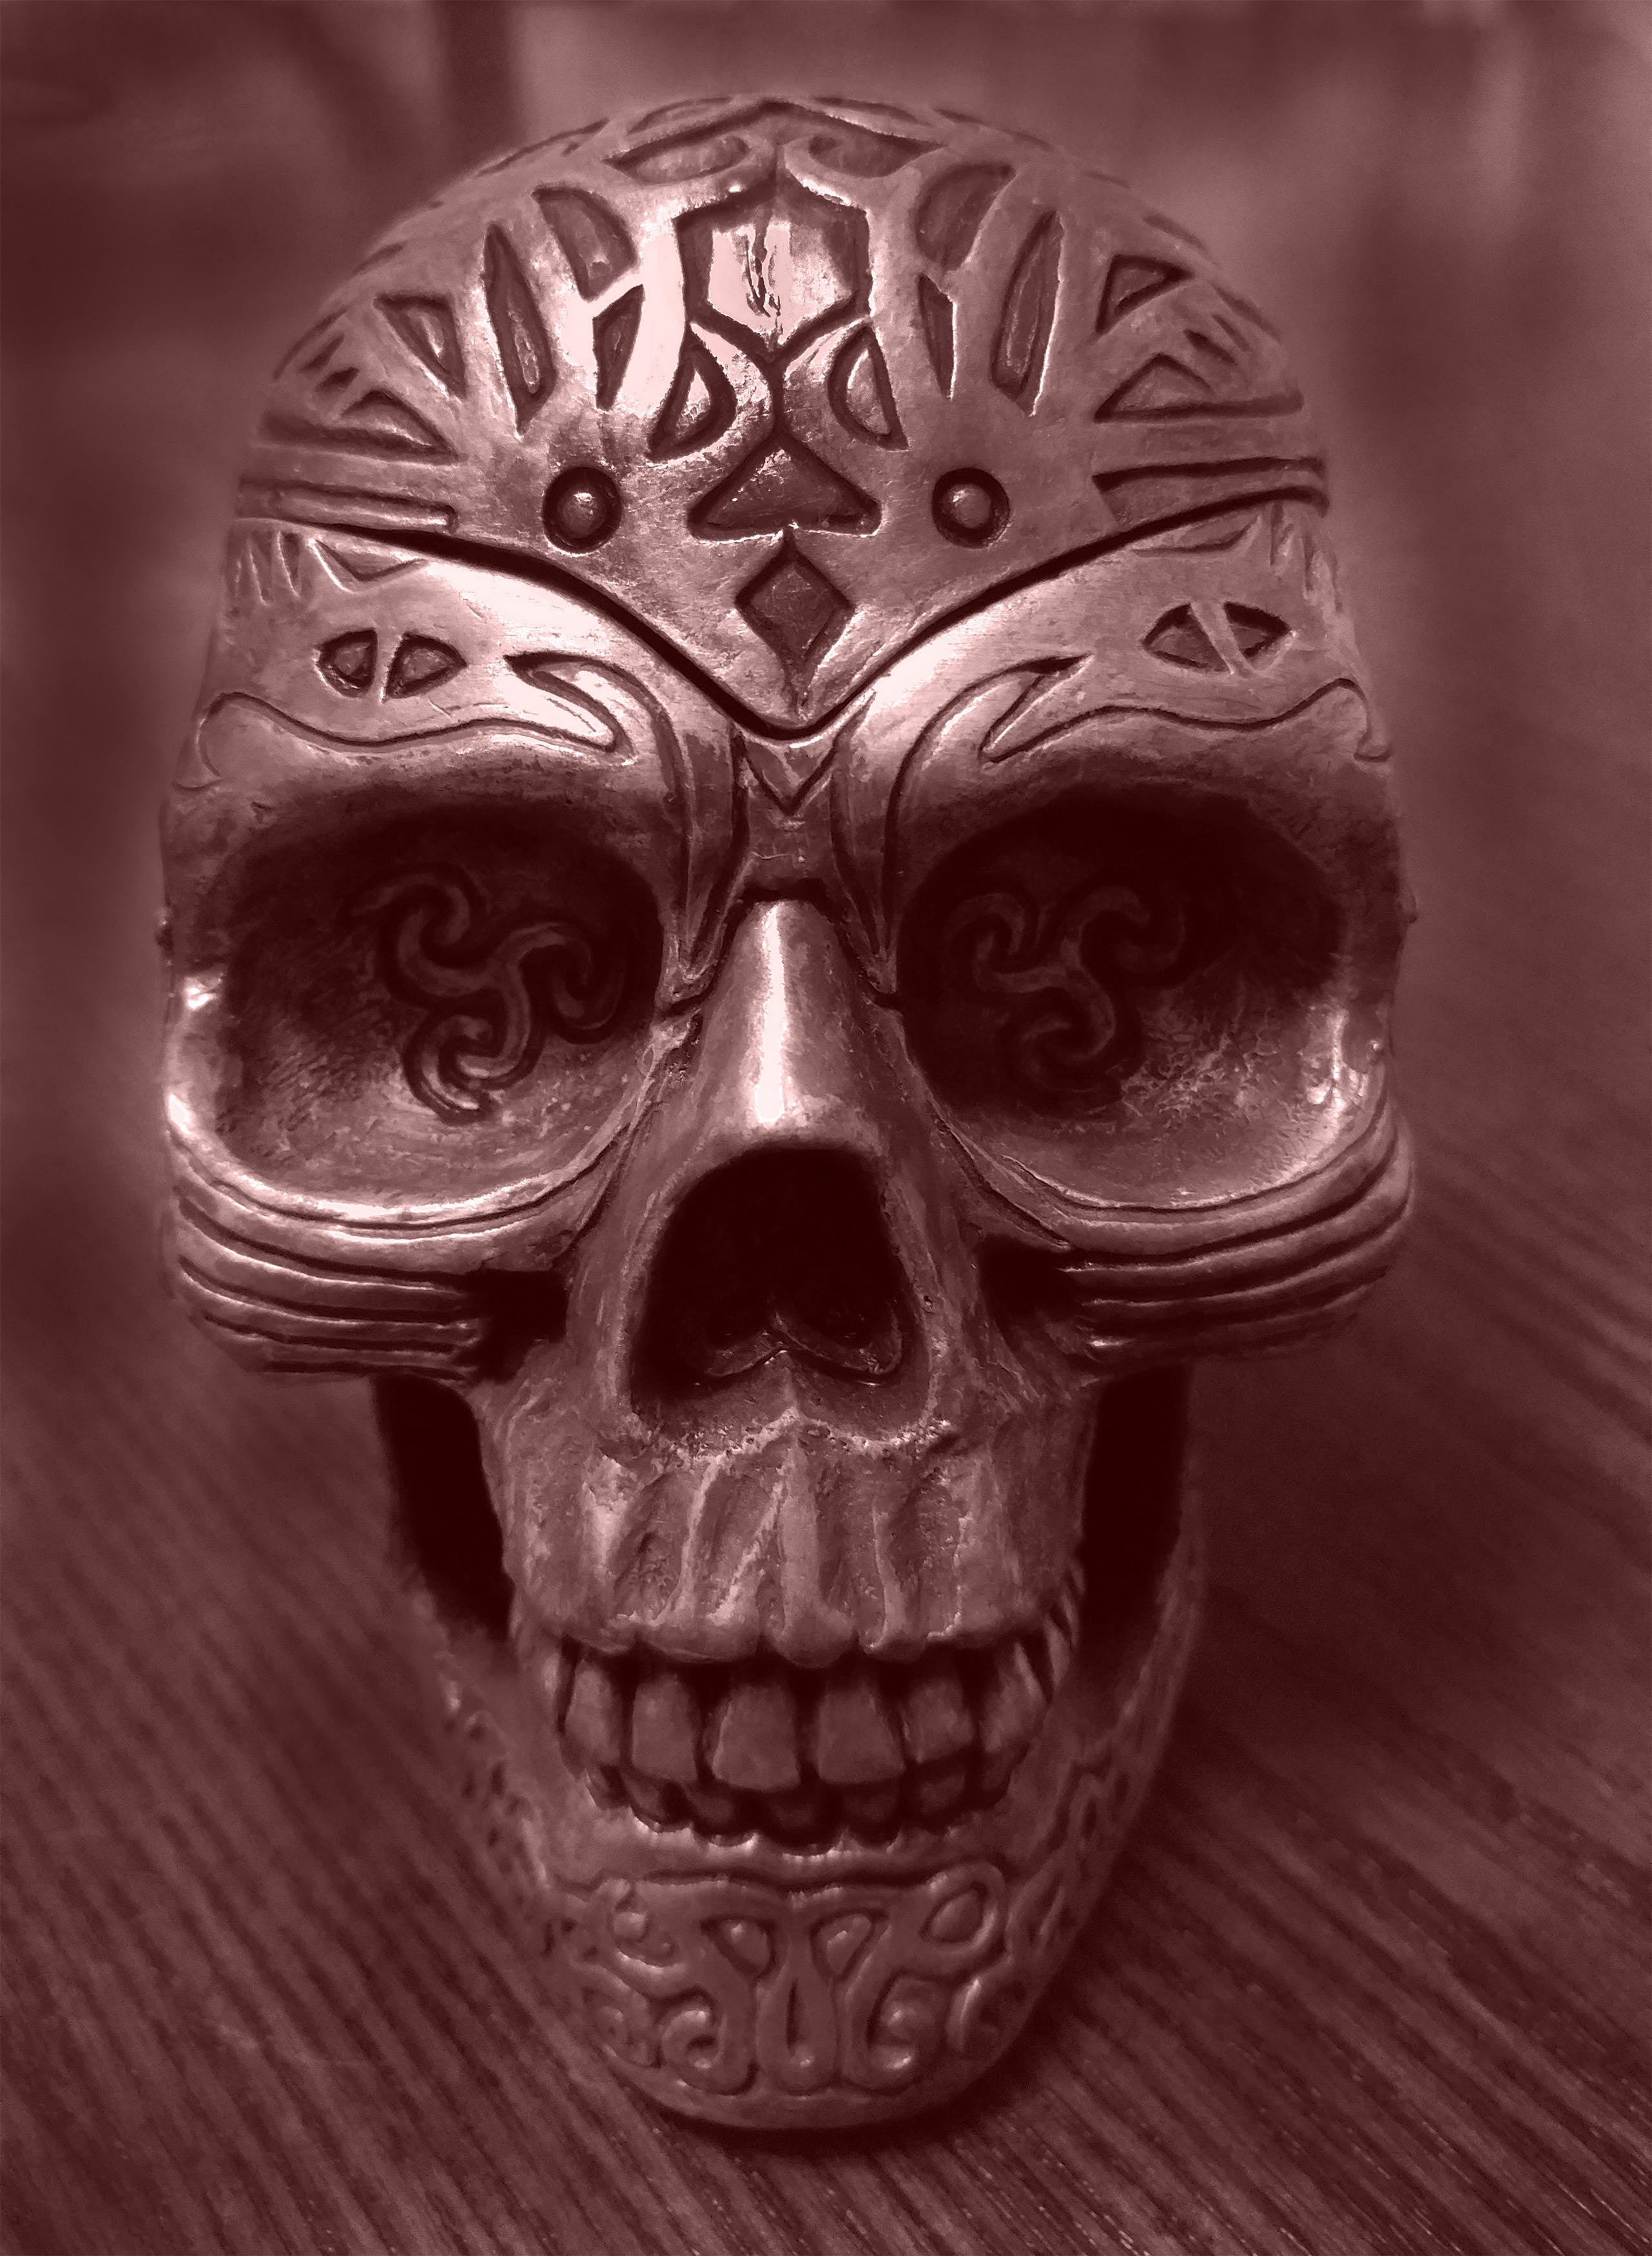 Gray Metal Skull on Brown Wooden Surface